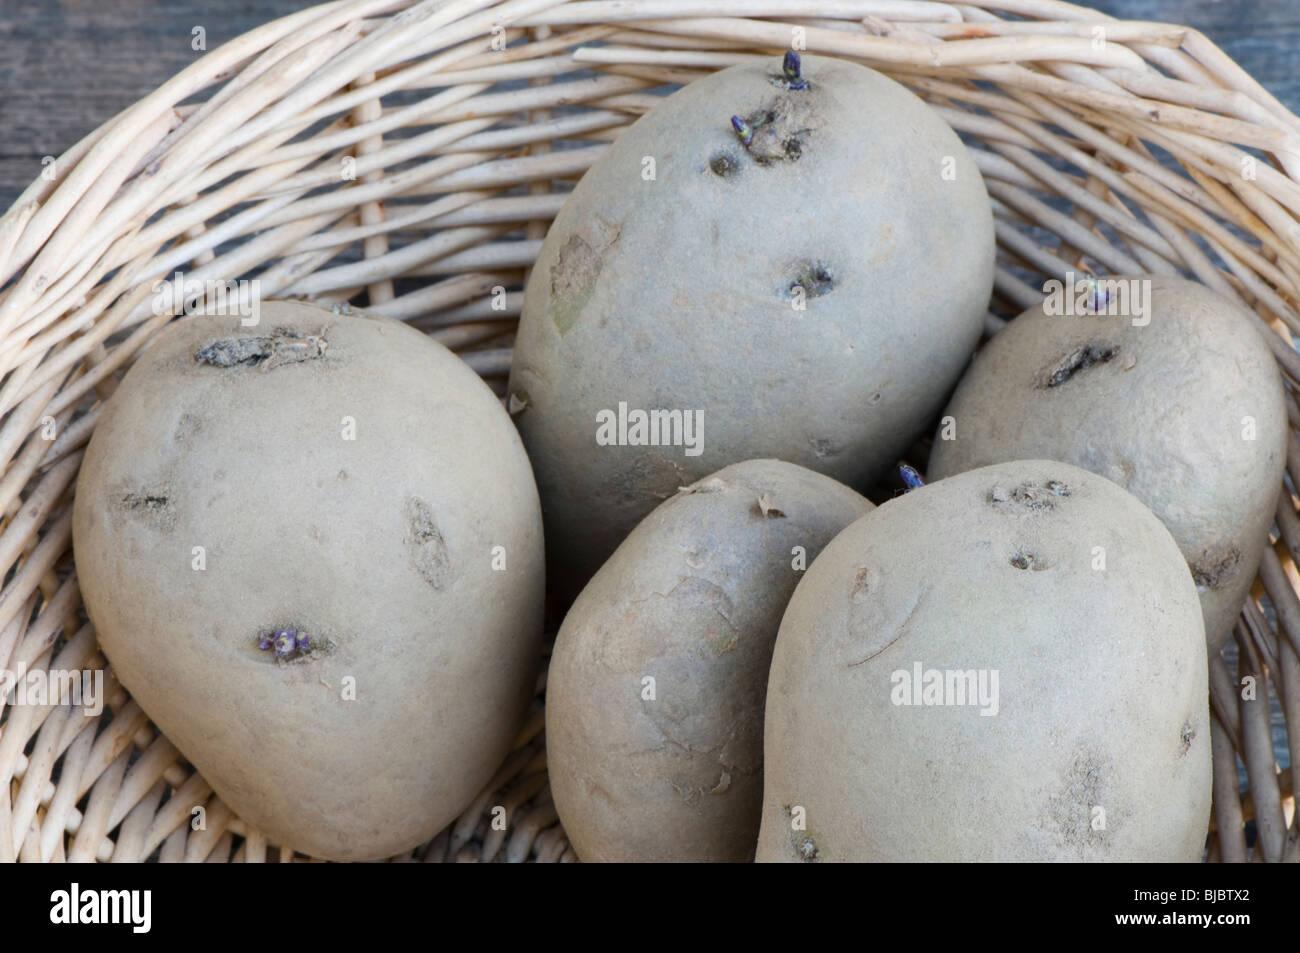 International Kidney seed potatoes, early main crop , also marketed as Jersey Royal, in a basket - Stock Image